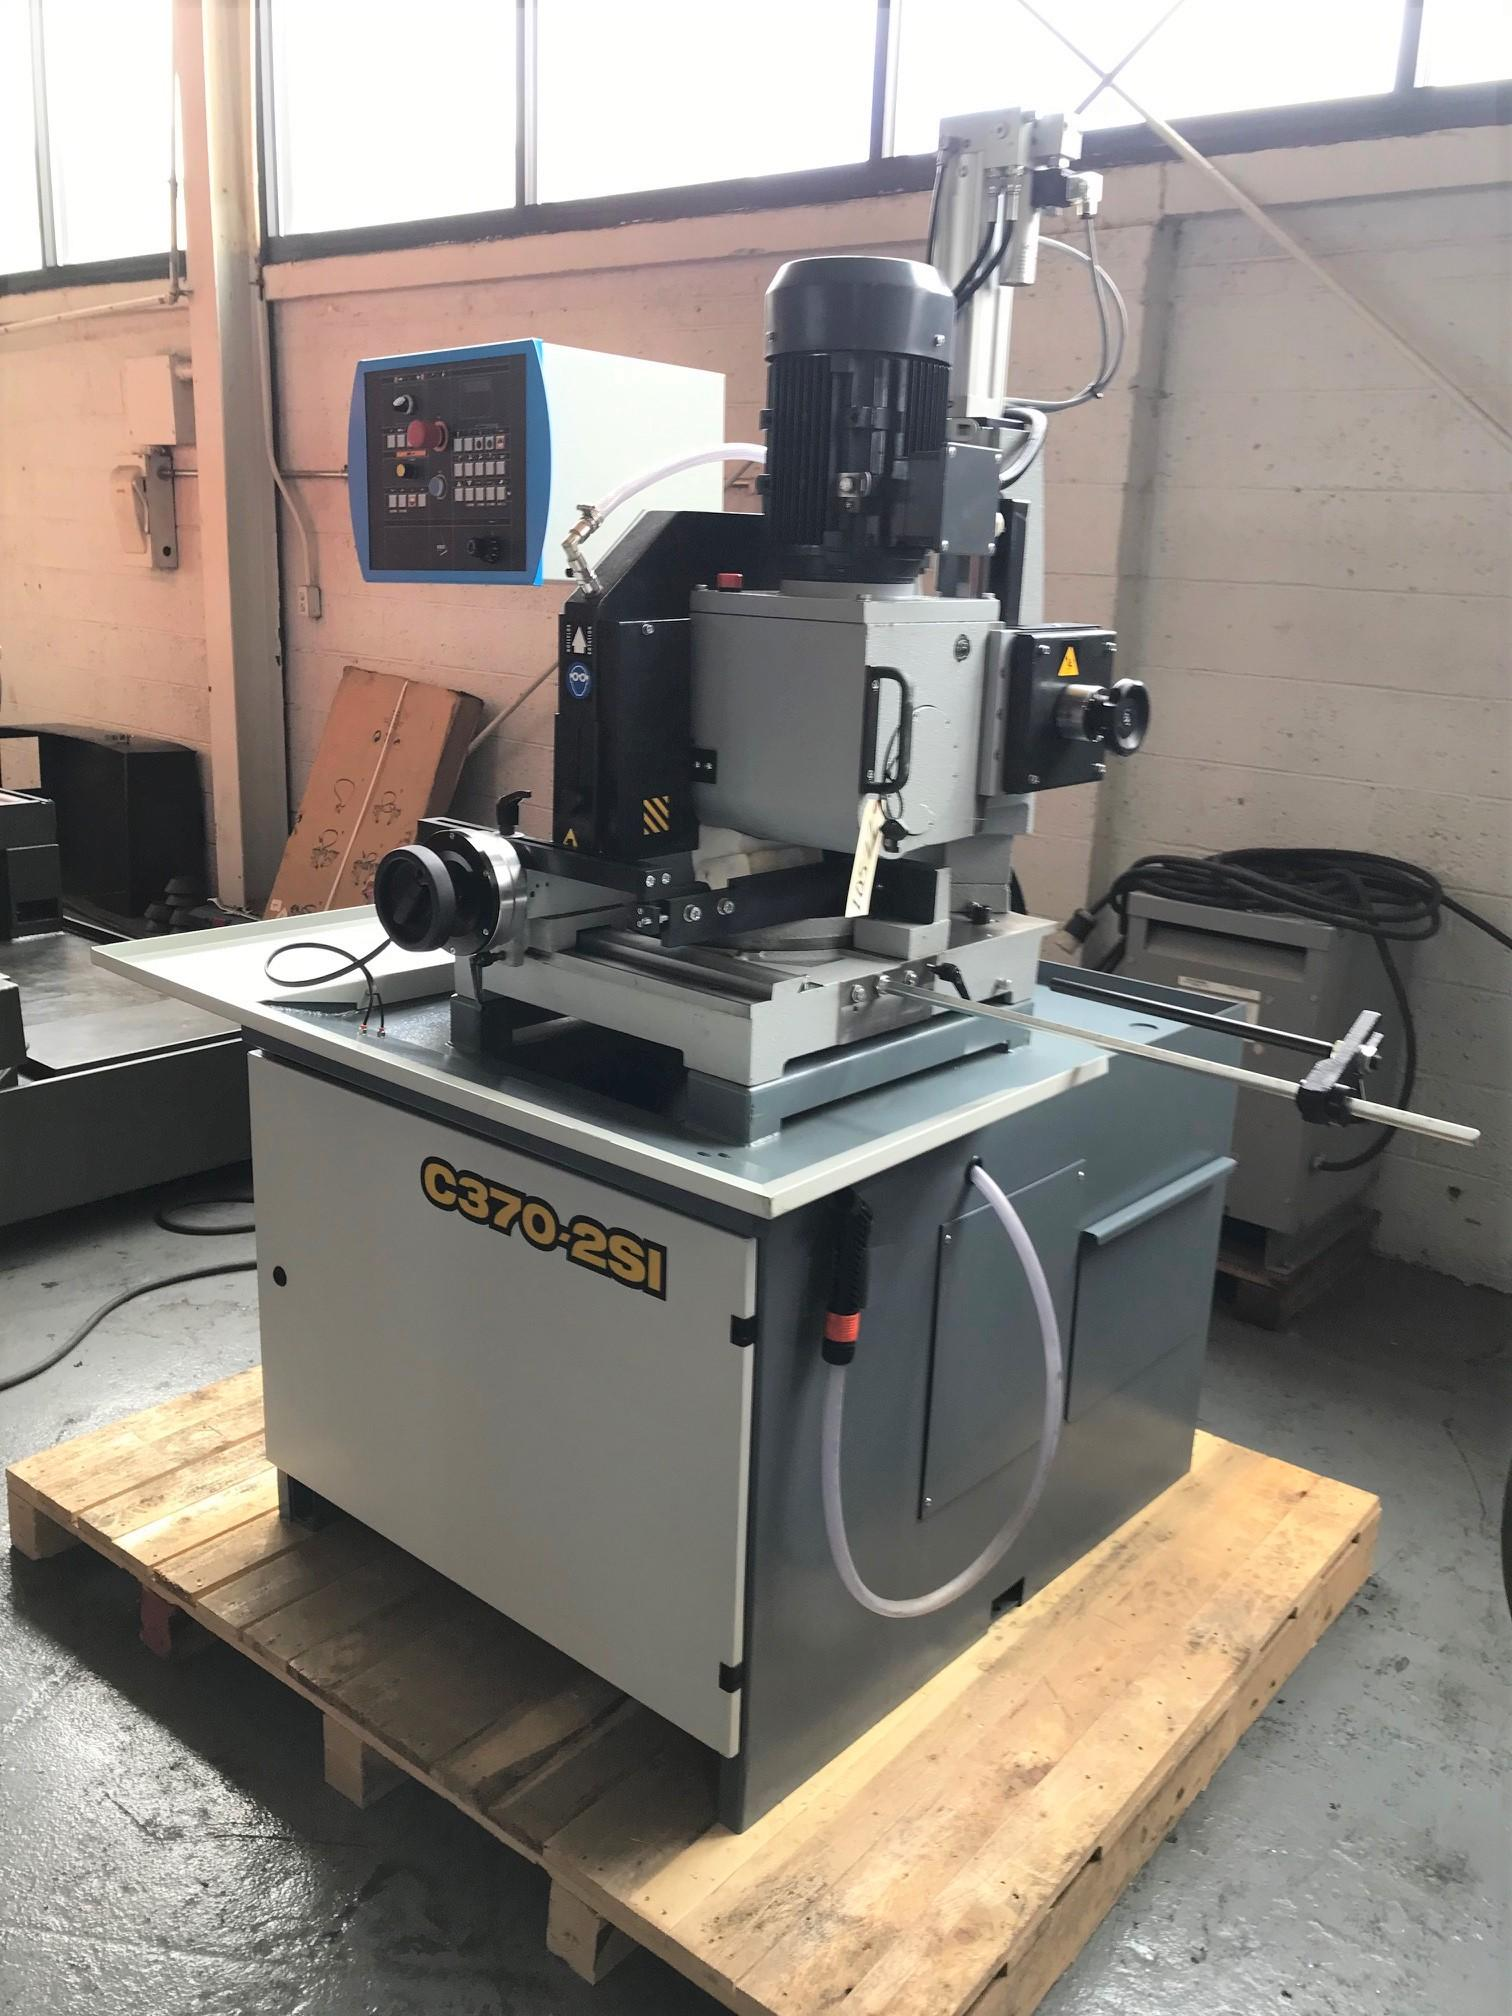 USED HYD-MECH C370 2SI SEMI-AUTOMATIC HEAVY DUTY COLD SAW, 2017, Stock No. 10577